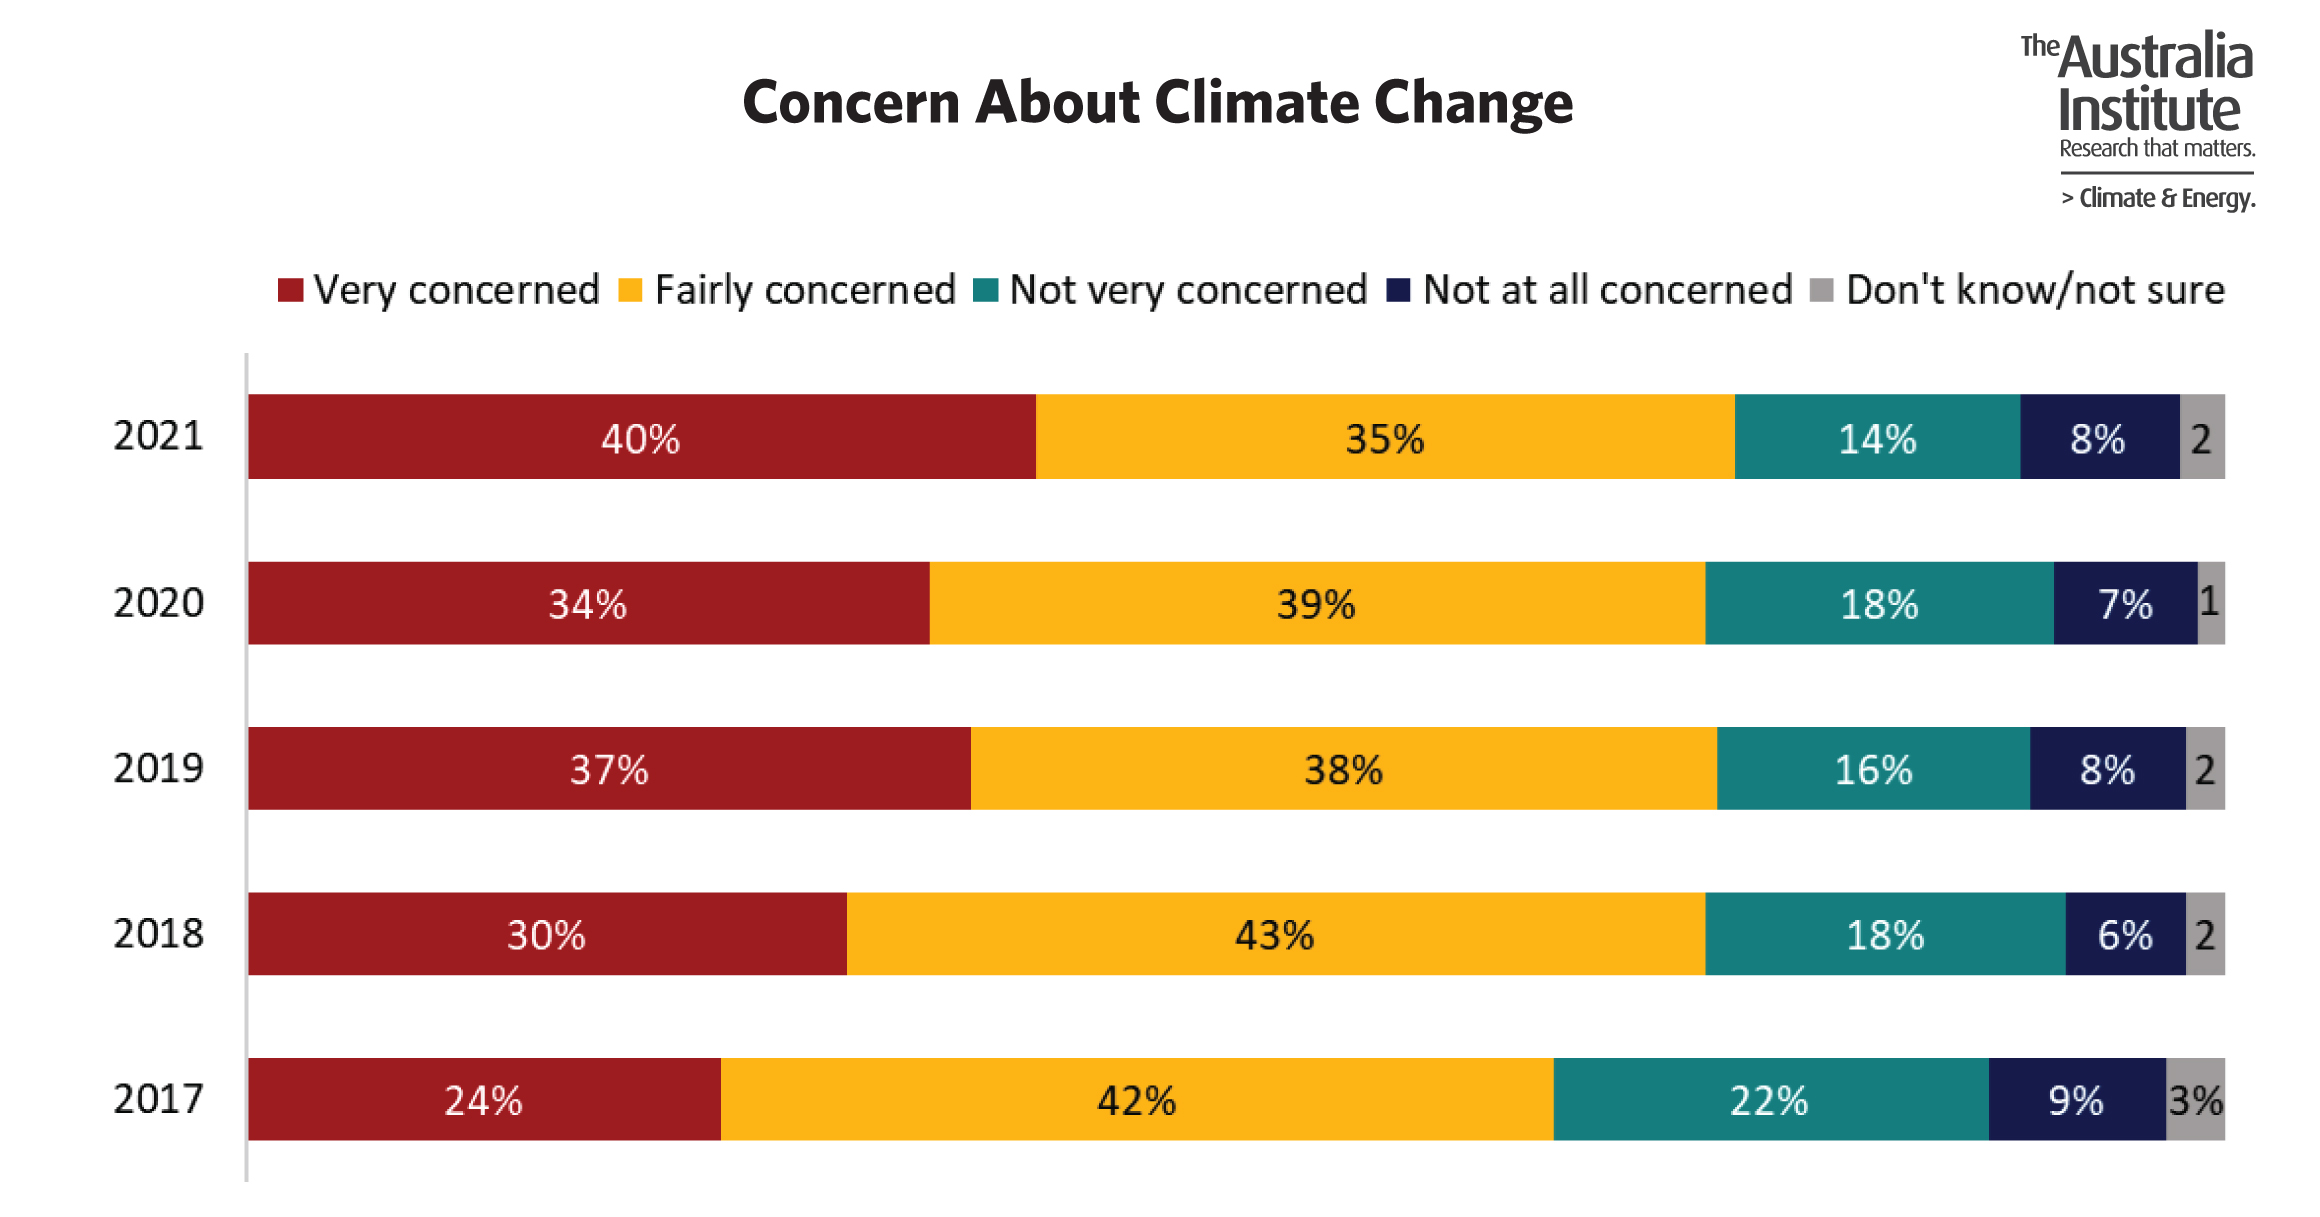 A graph showing results of people concerned about climate change from 2017 - 2021.